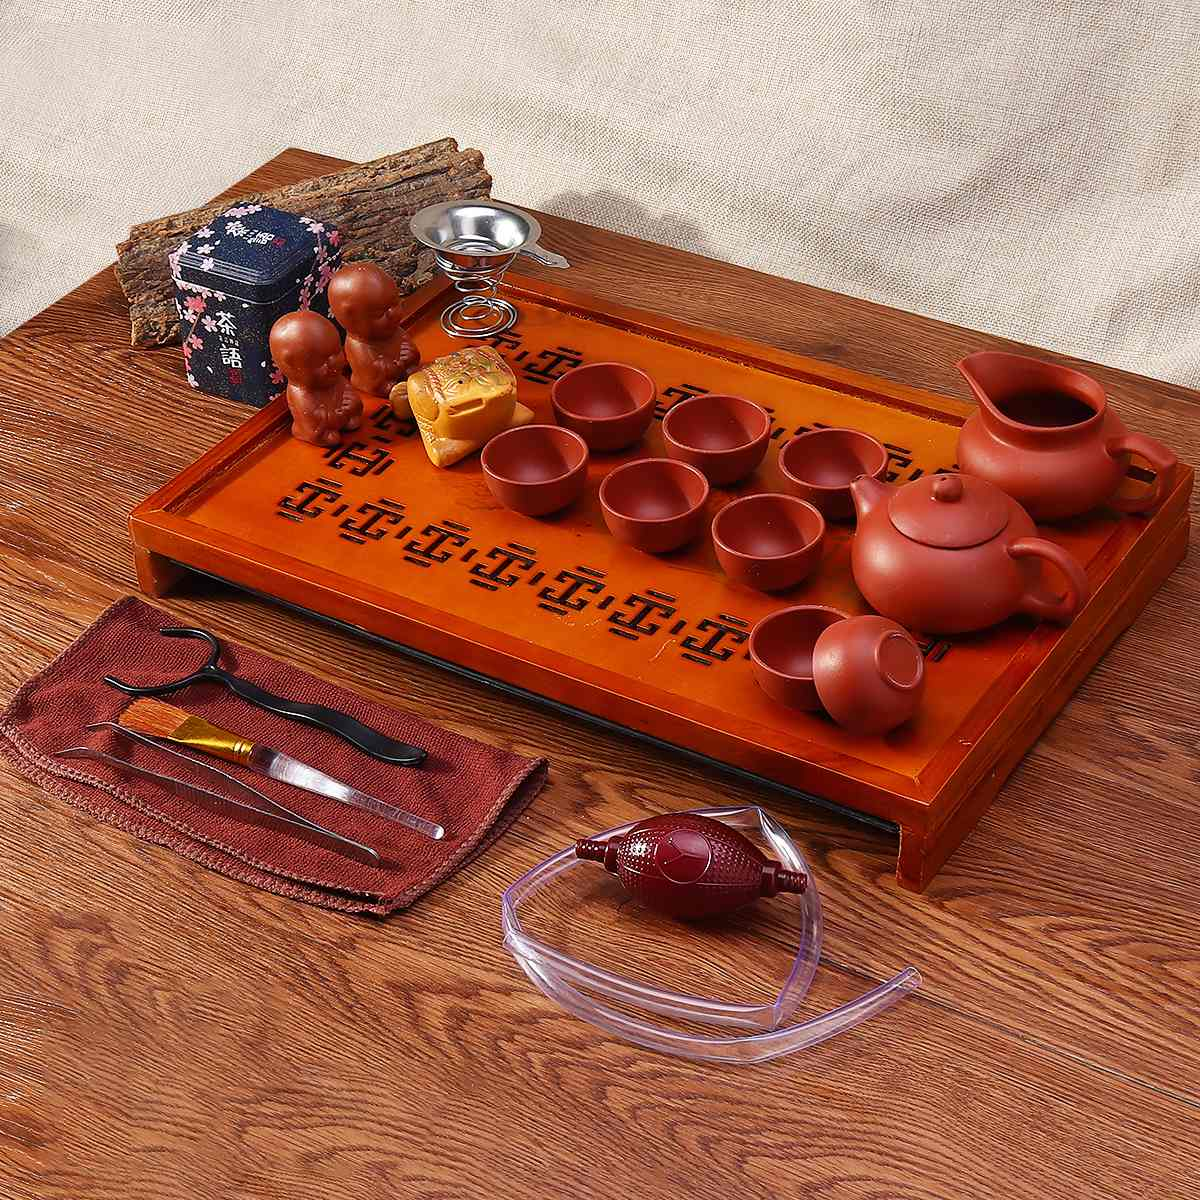 Chinese Purple Clay Kung Fu Tea Set Drinkware Tea Cup Tureen Infuser Chinese Tea Ceremony with Wood Tea Tray Chahai Tea Table